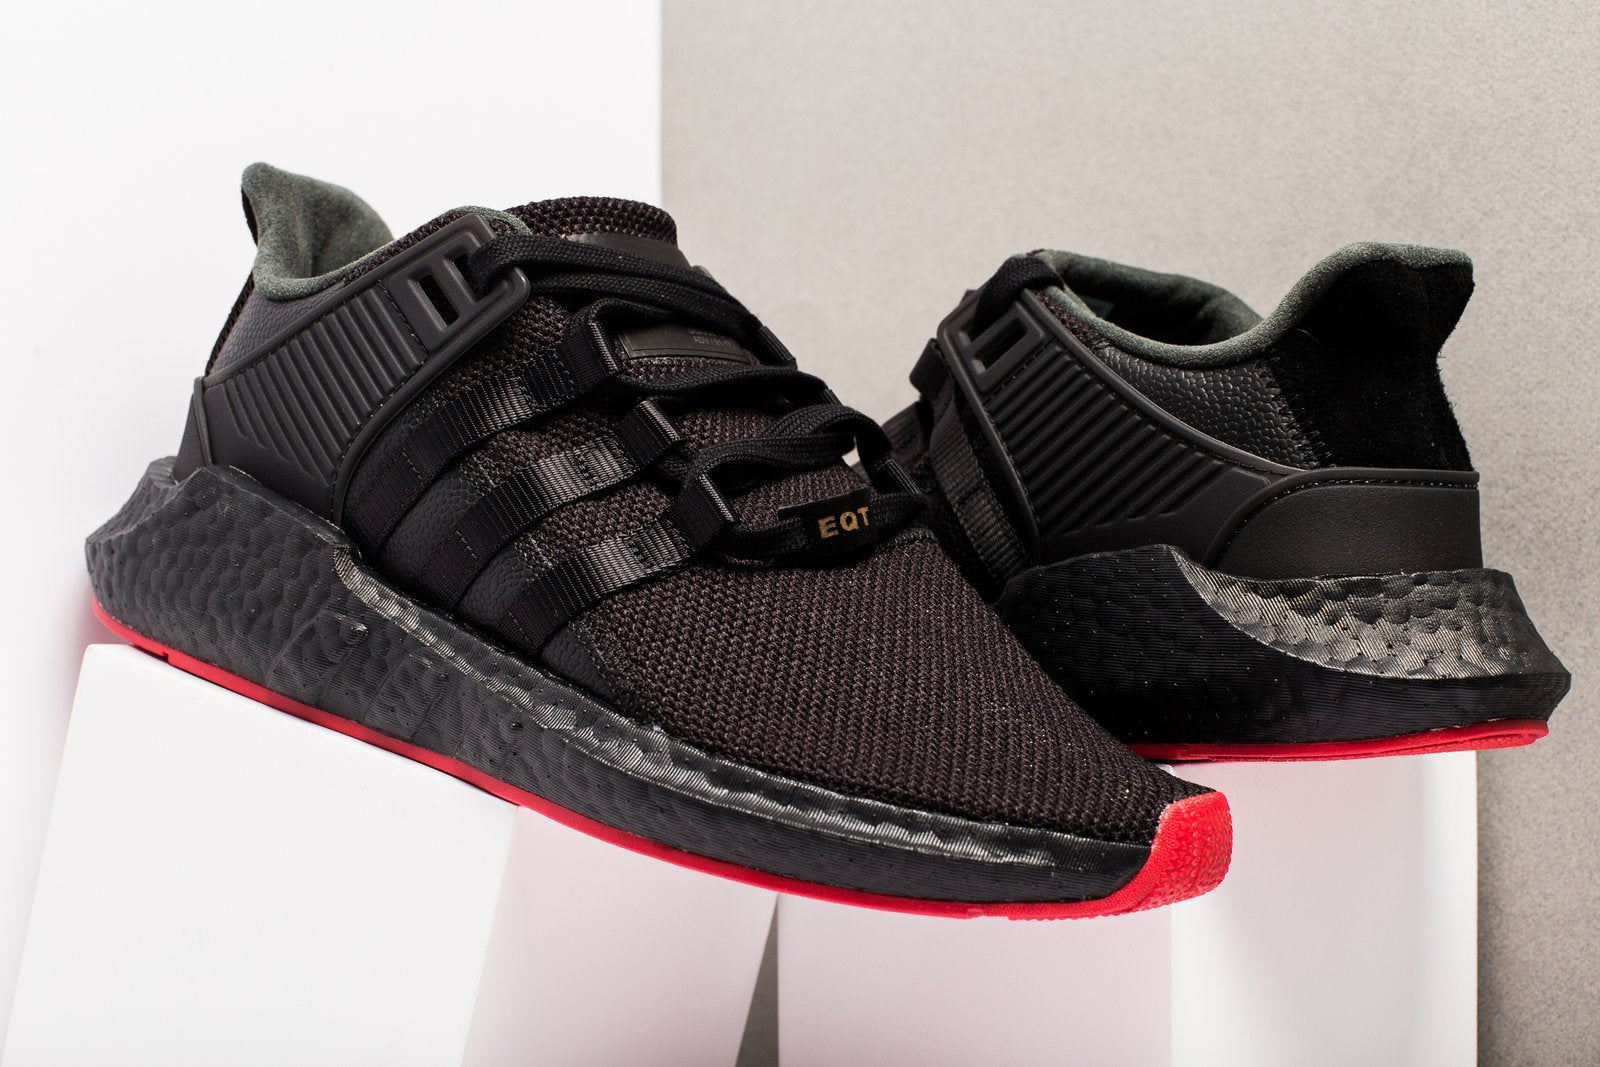 ADIDAS EQT SUPPORT 93/17 - Oneness Boutique